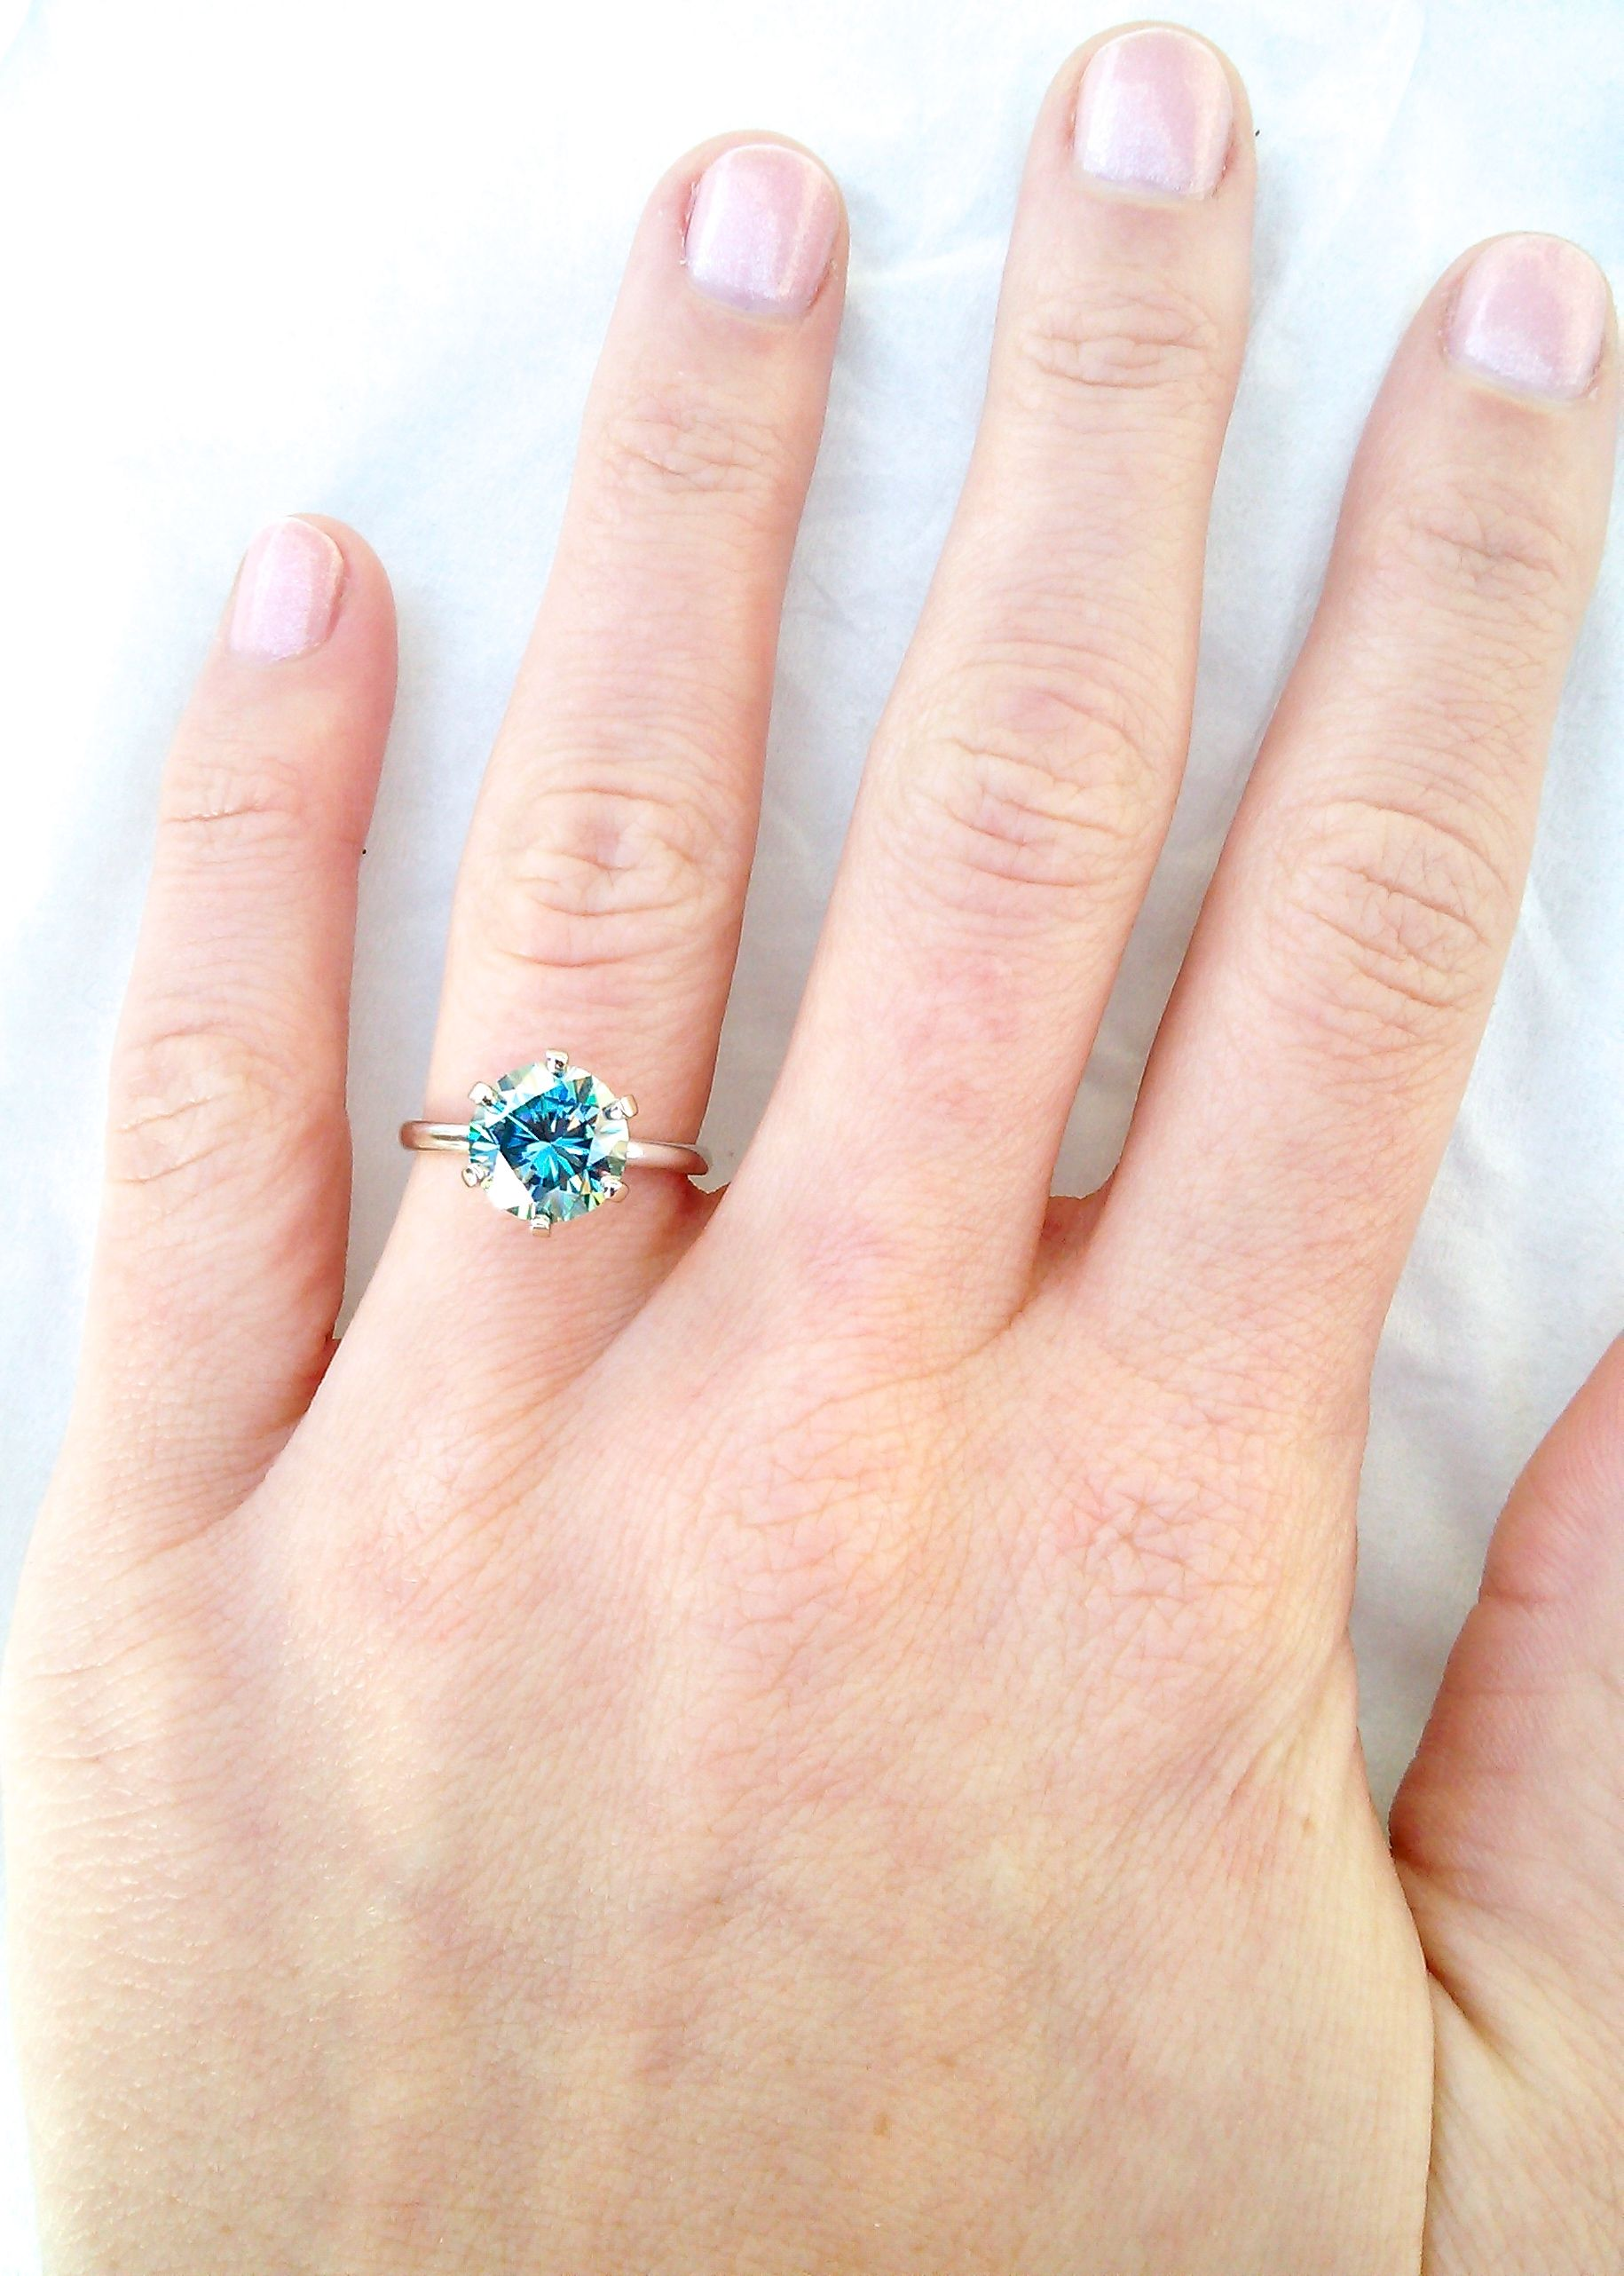 My Engagement ring! Blue Moissanite in a classic six prong tiffany ...